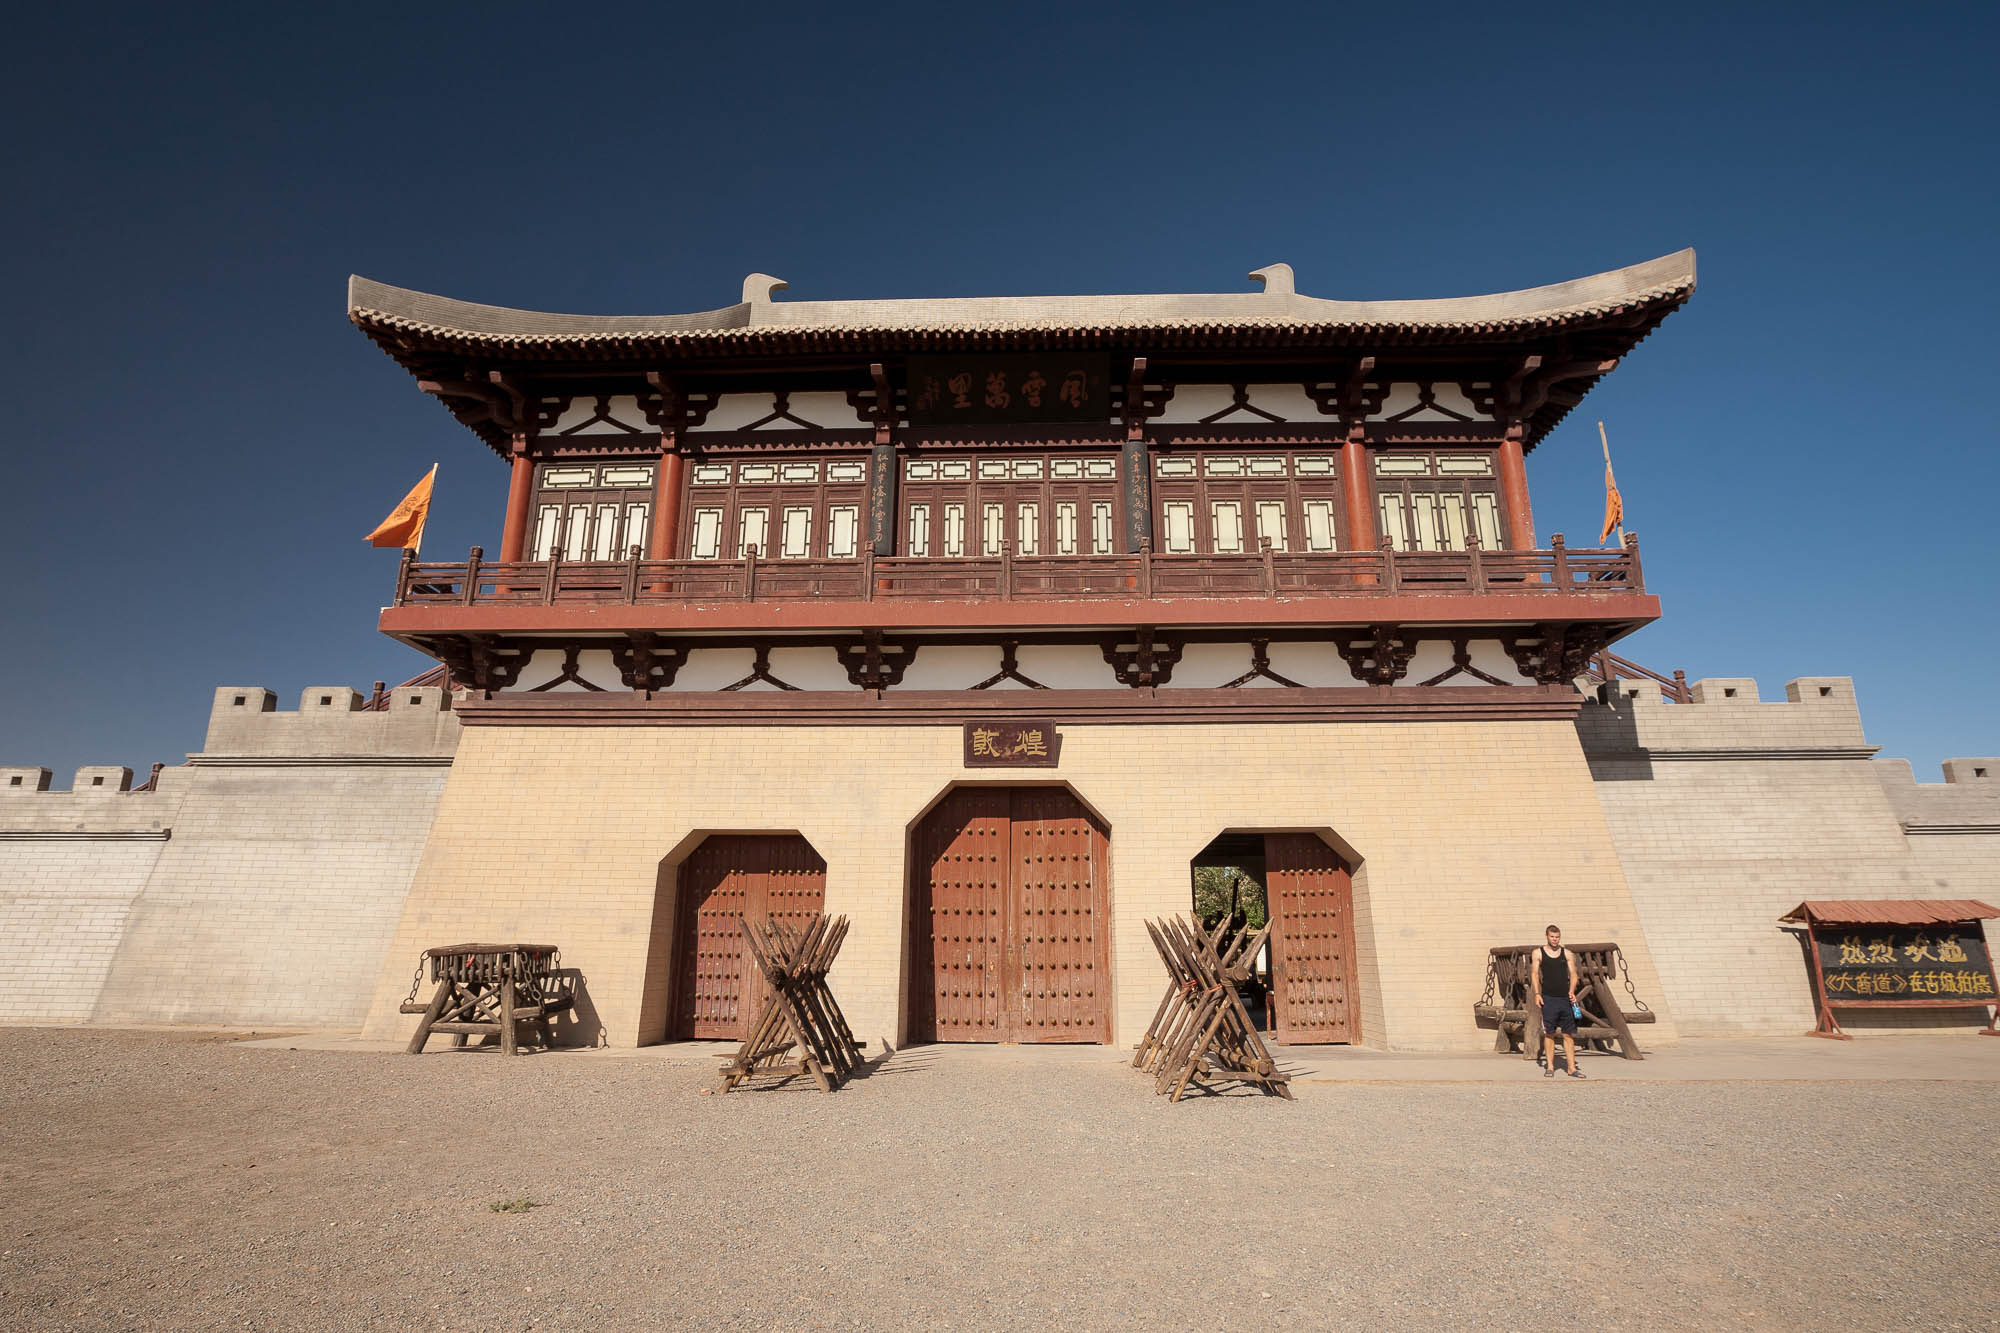 Dunhuang Film Set